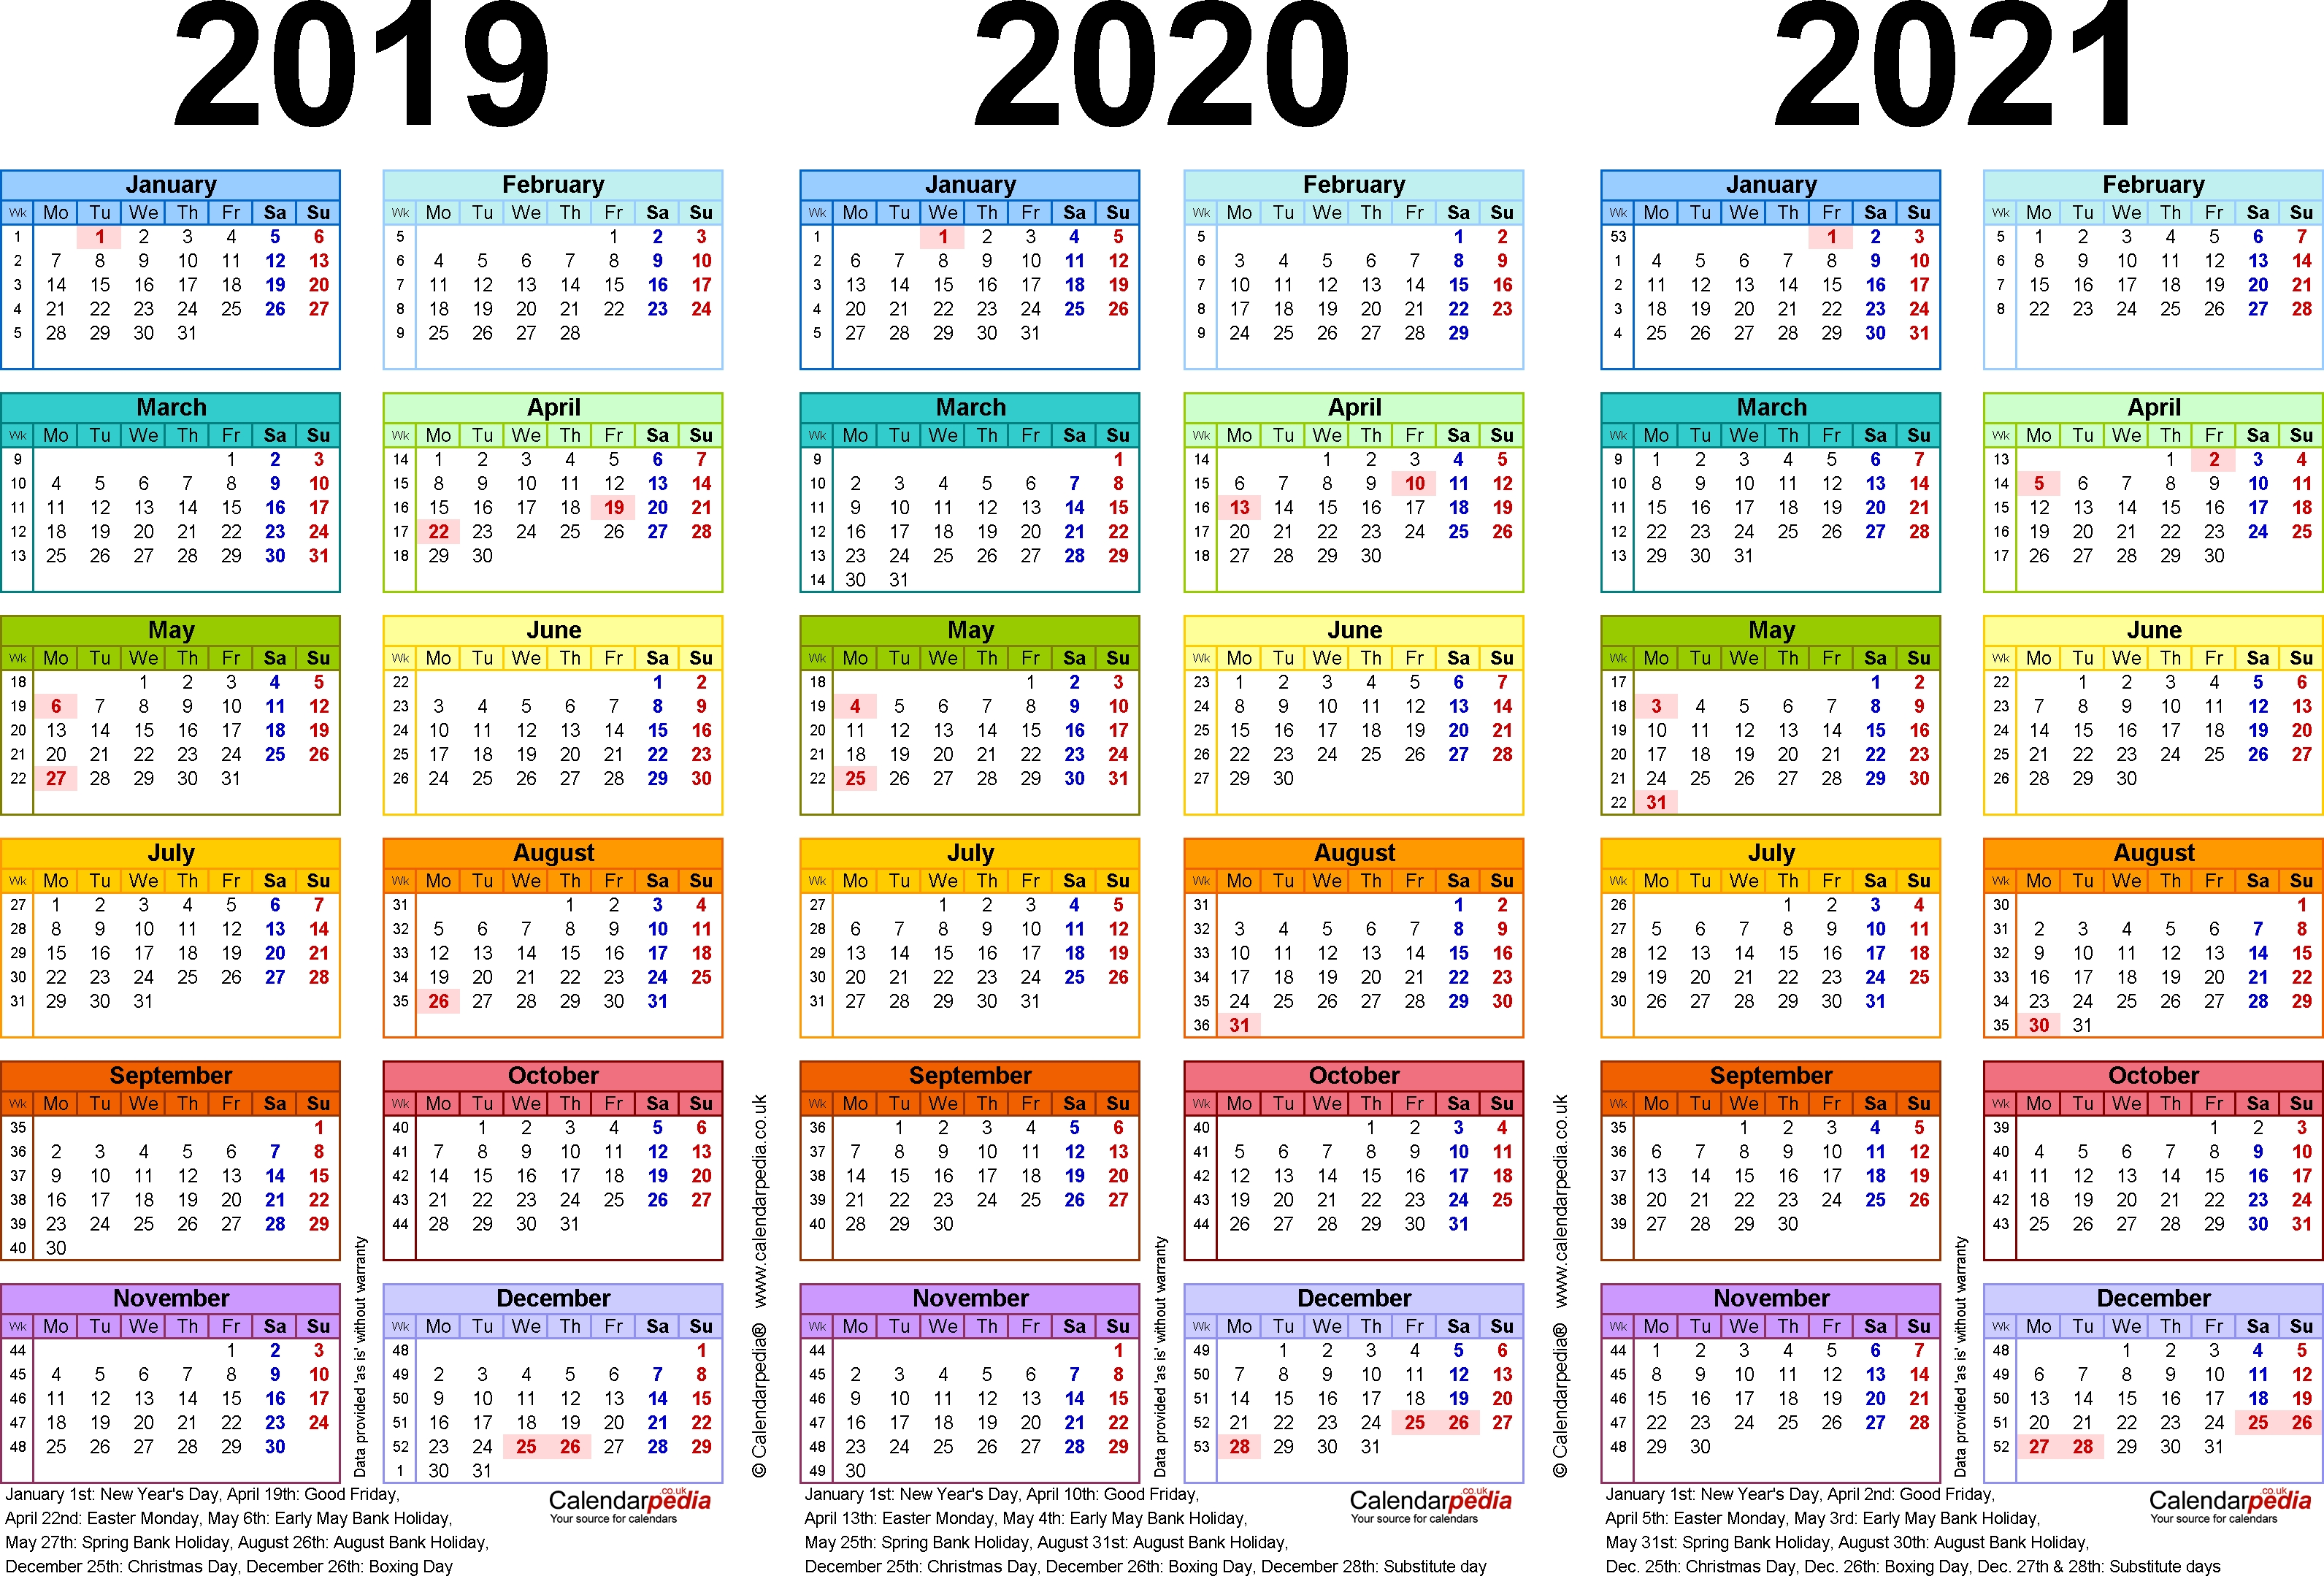 Three Year Calendars For 2019, 2020 & 2021 (Uk) For Pdf Page 3 Calendar 2019